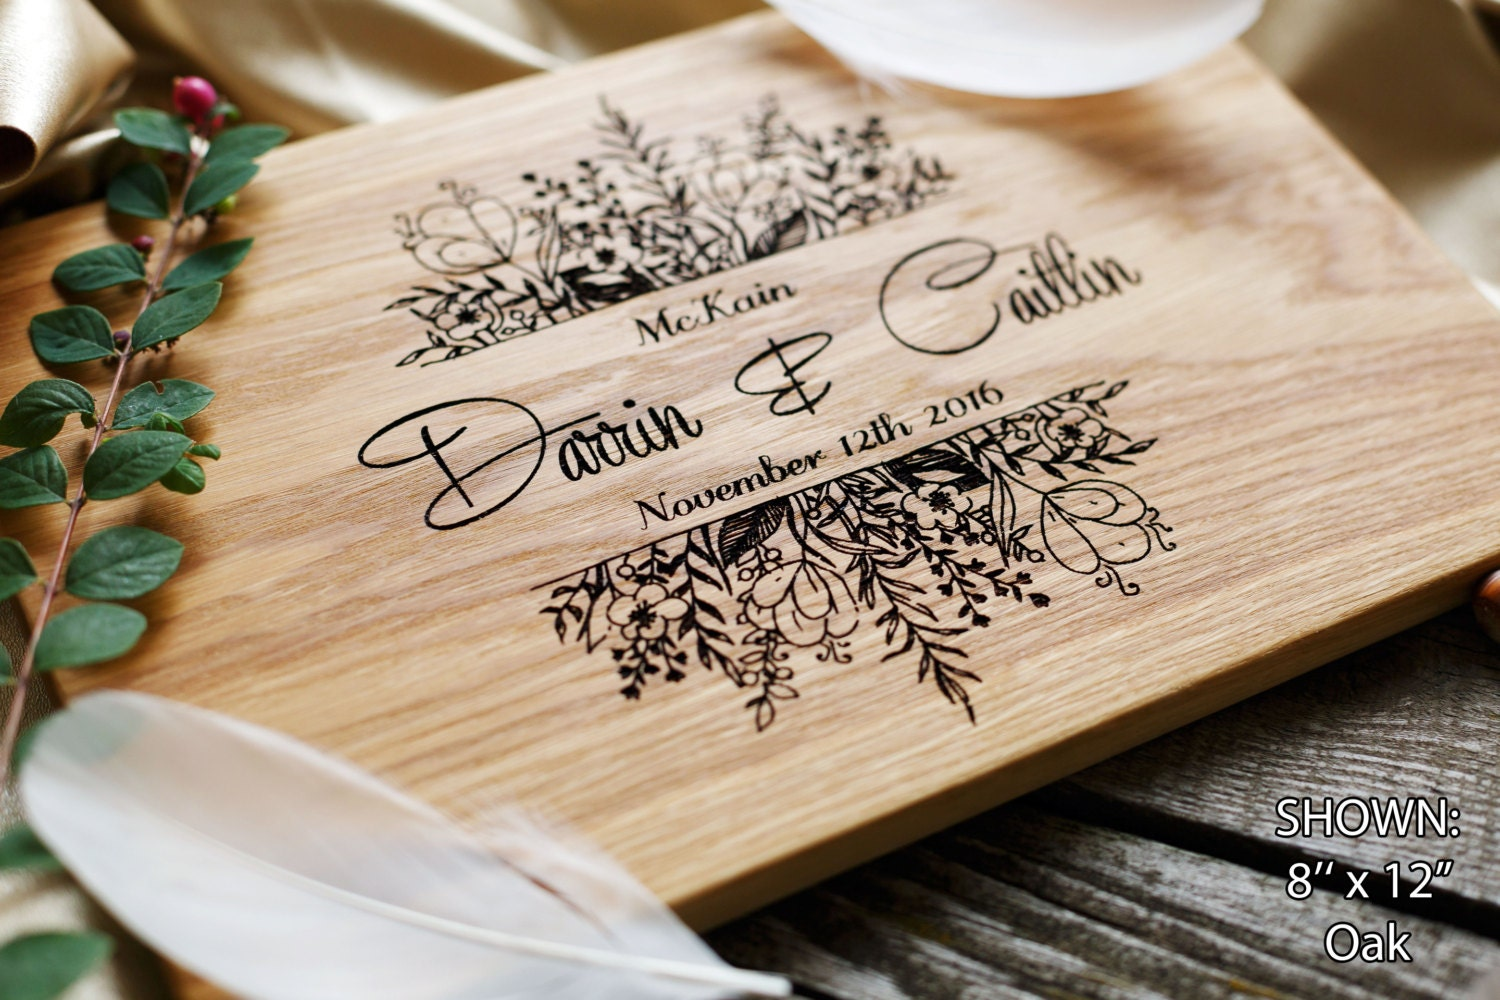 Wedding Gift Personalised: Personalized Cutting Board Wedding Gift Custom Wedding Gift